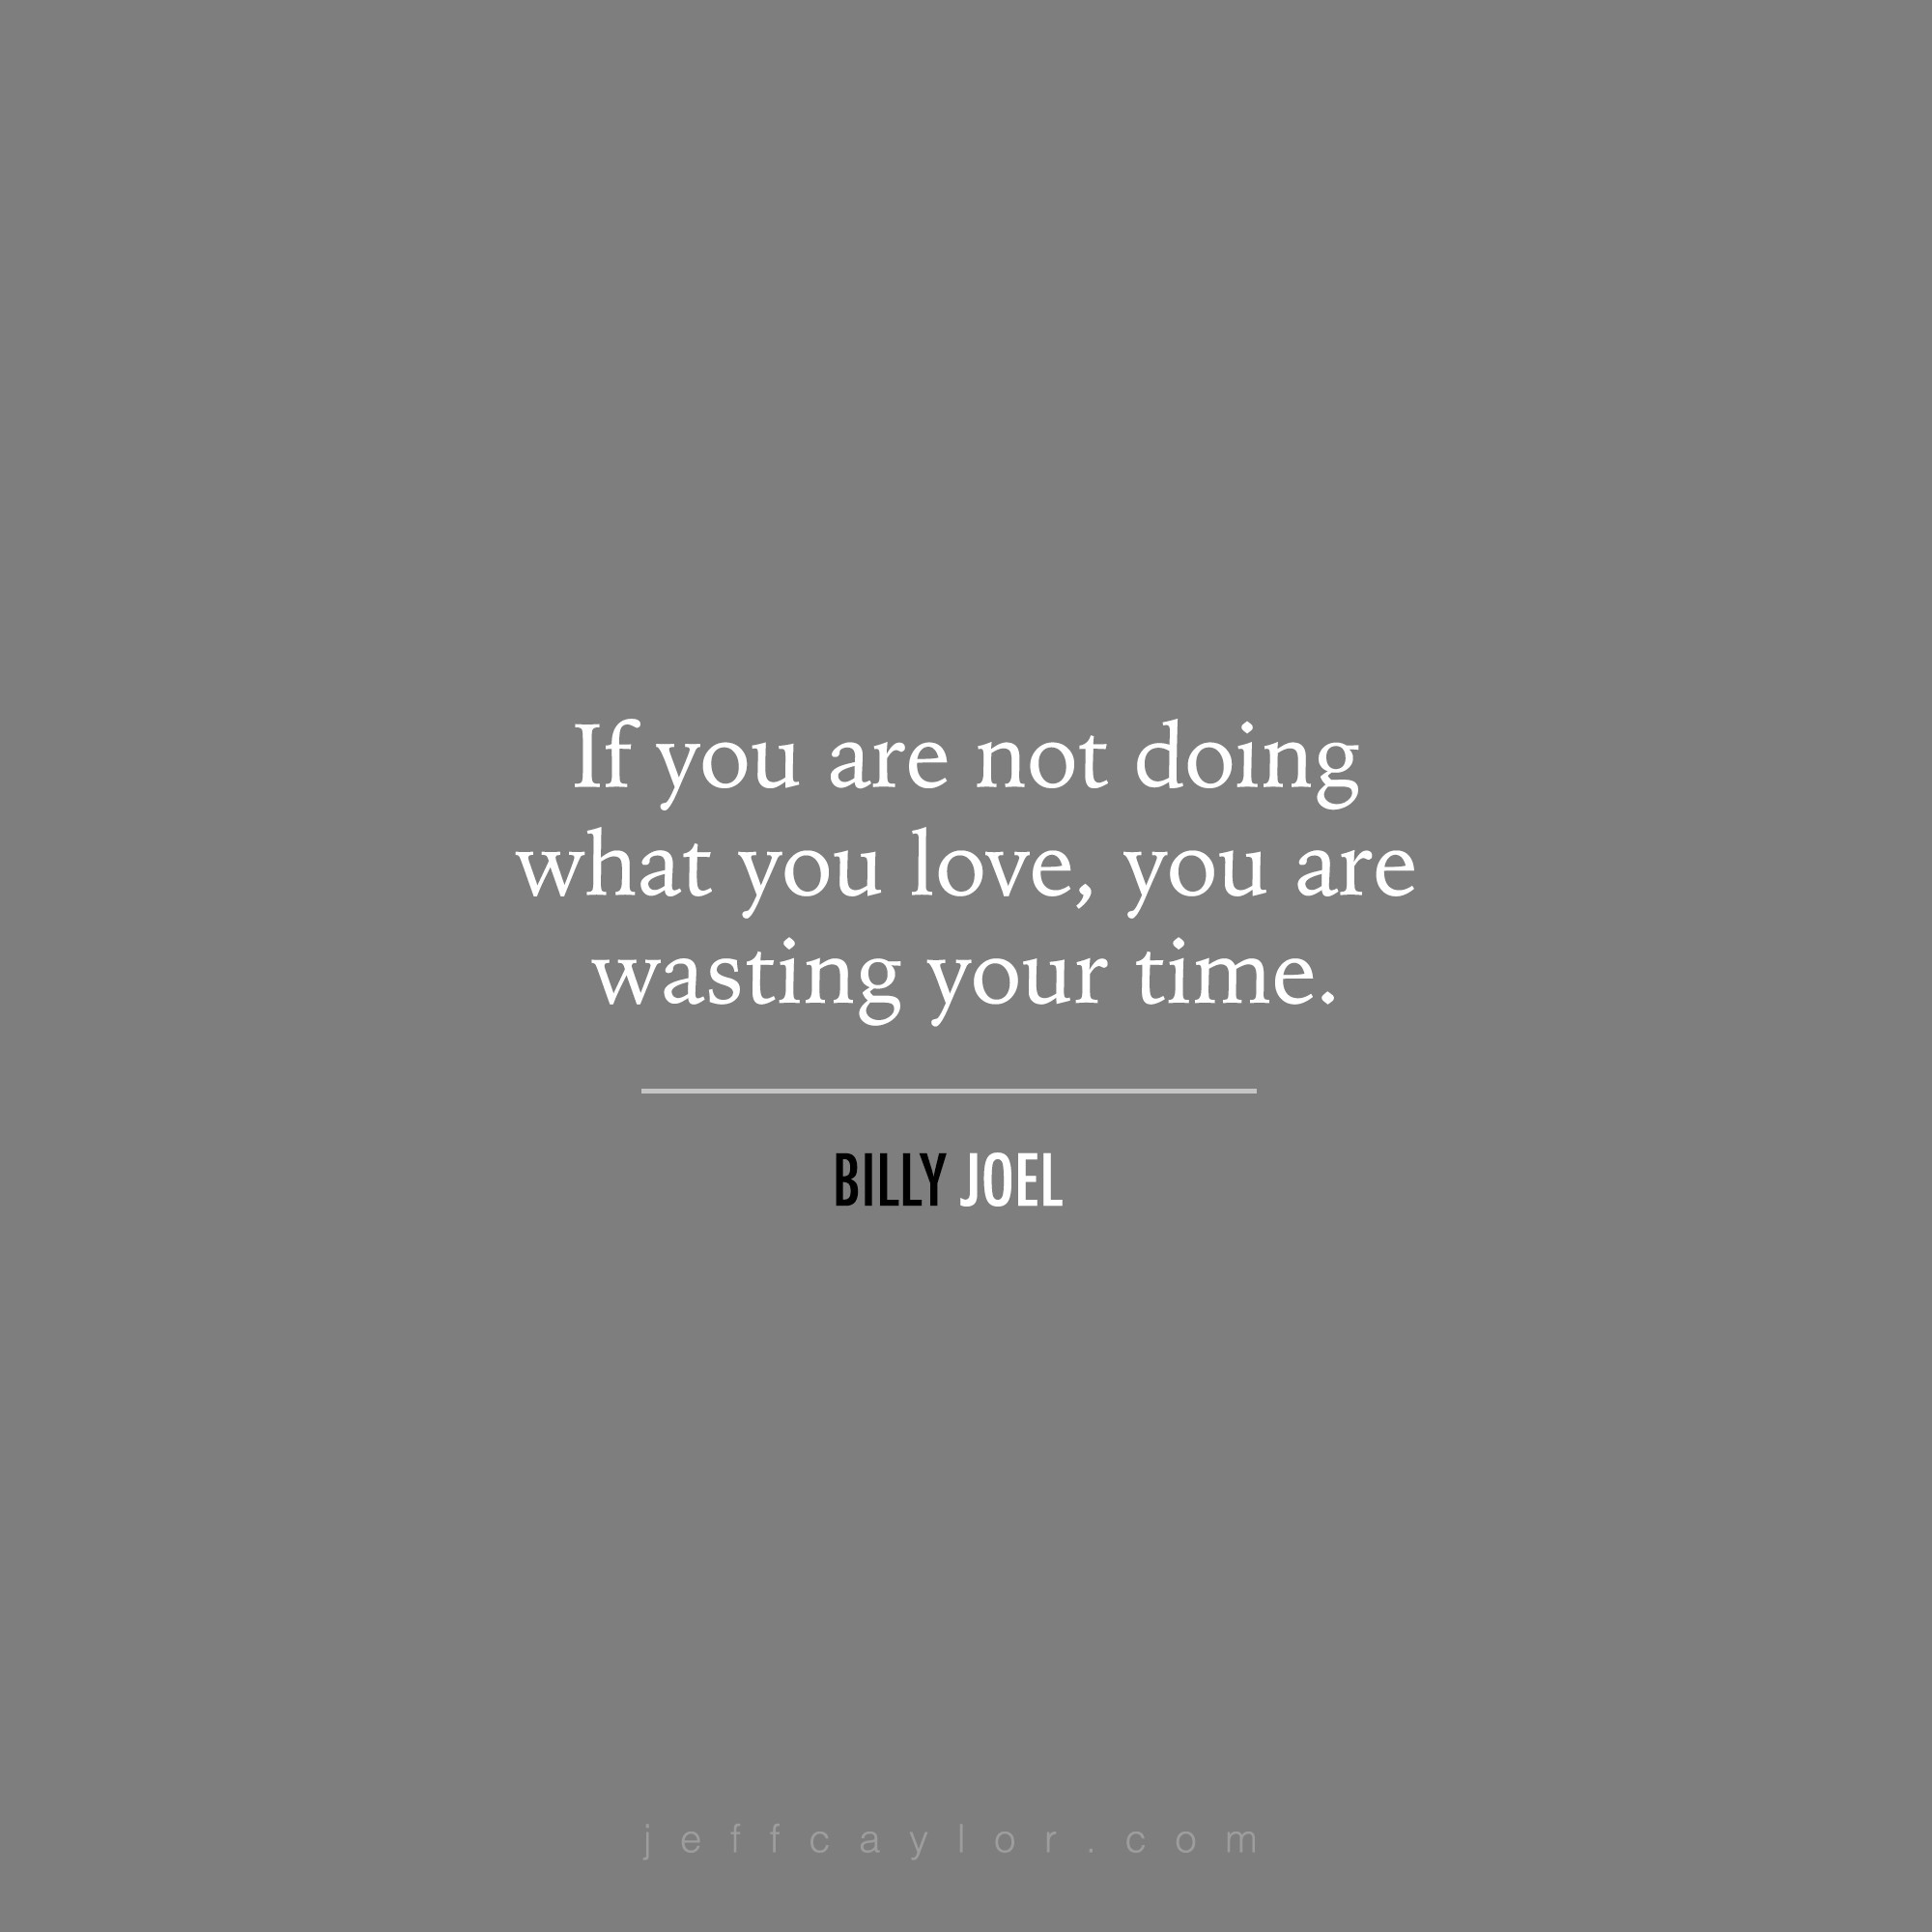 """""""If you are not doing what you love, you are wasting your time."""" - Billy Joel"""